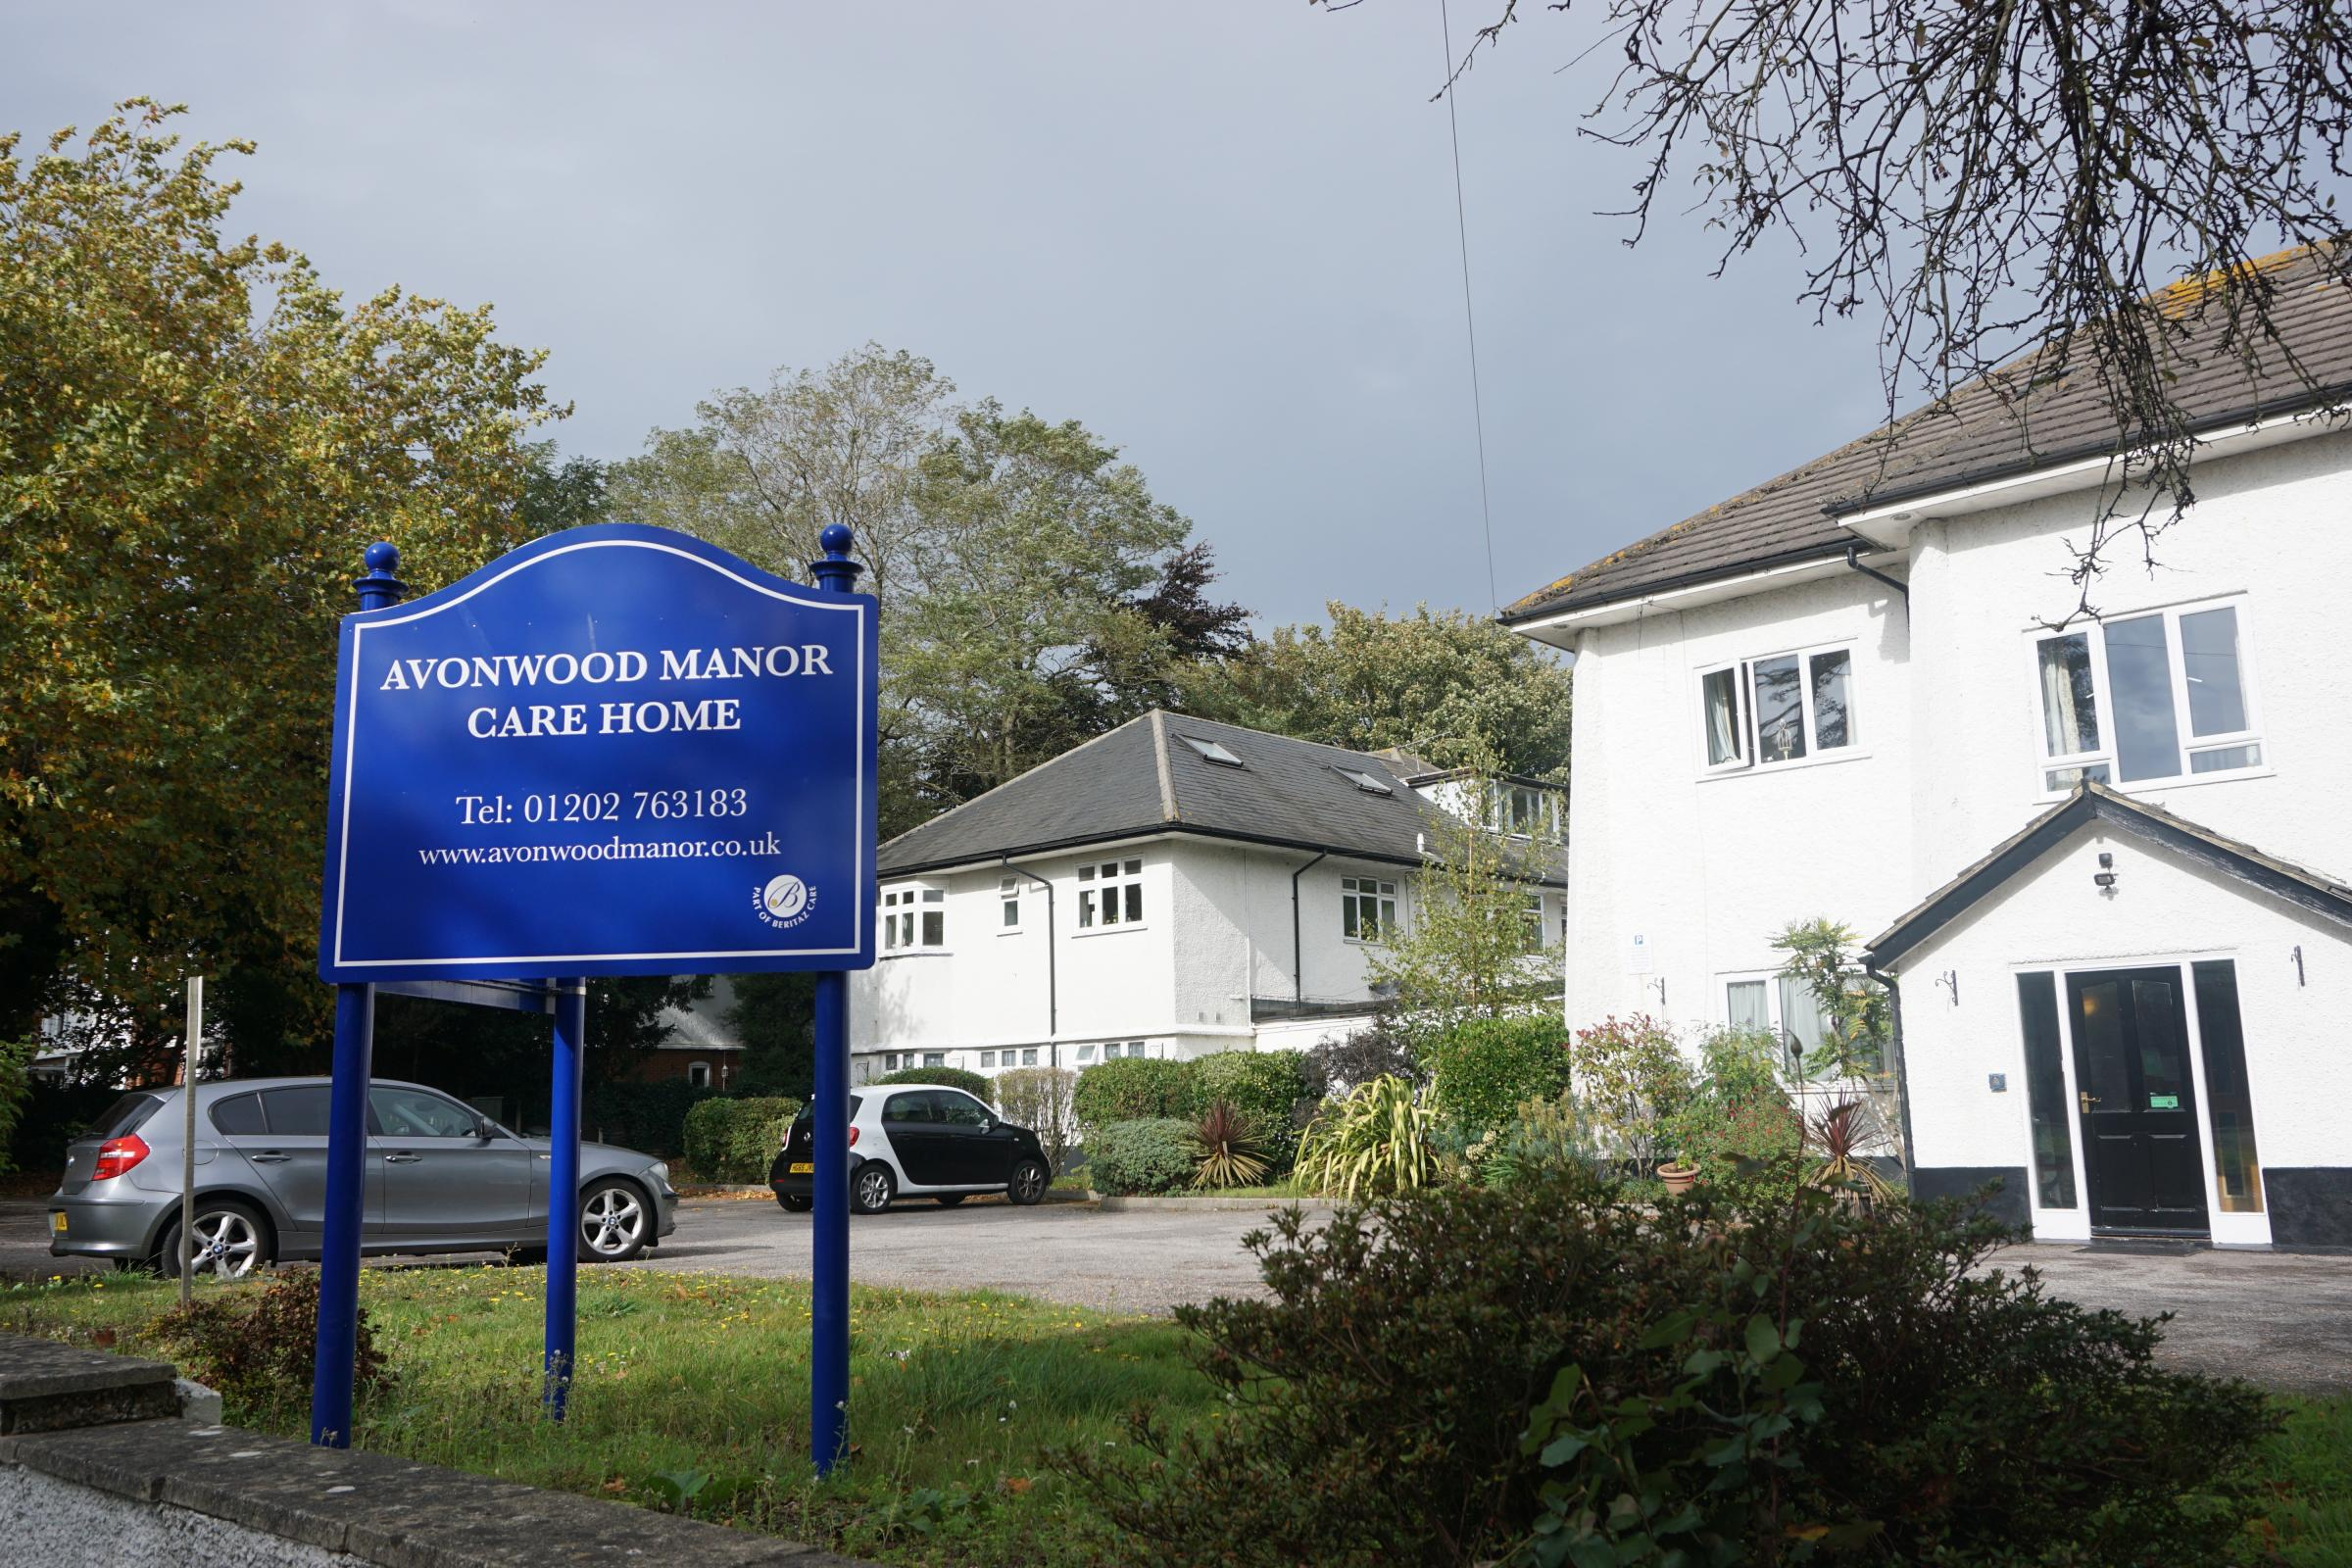 Avonwood Manor nursing home in Nelson Road, Poole